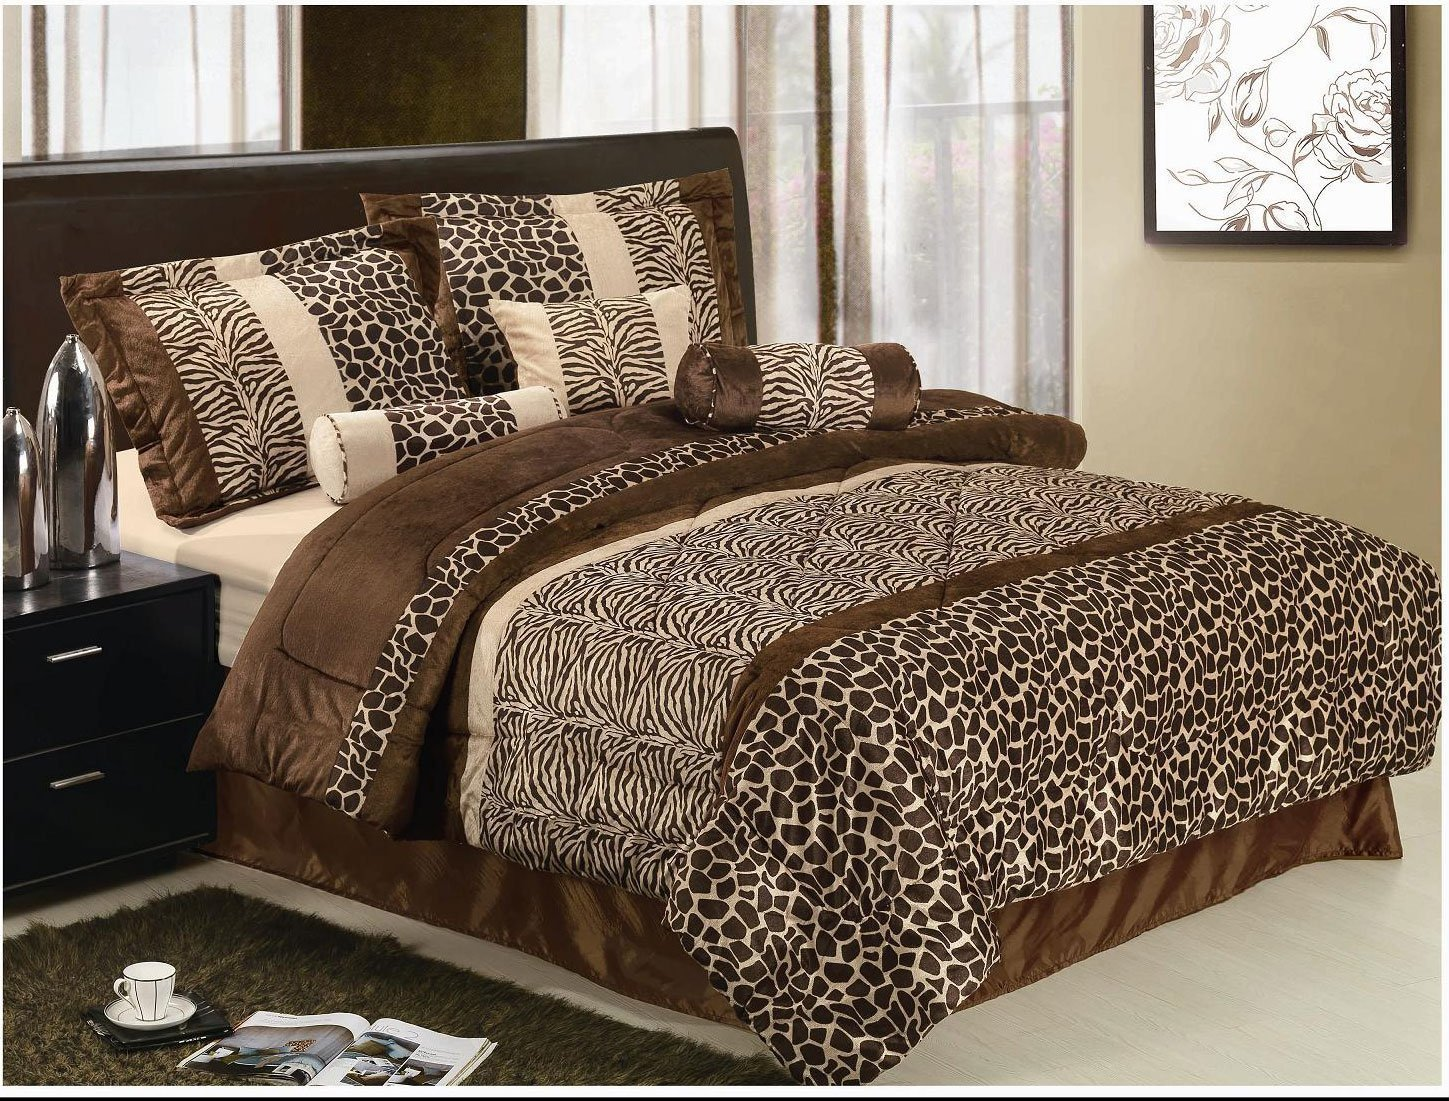 Best Safari Bedroom Decor Ideas Homesfeed With Pictures